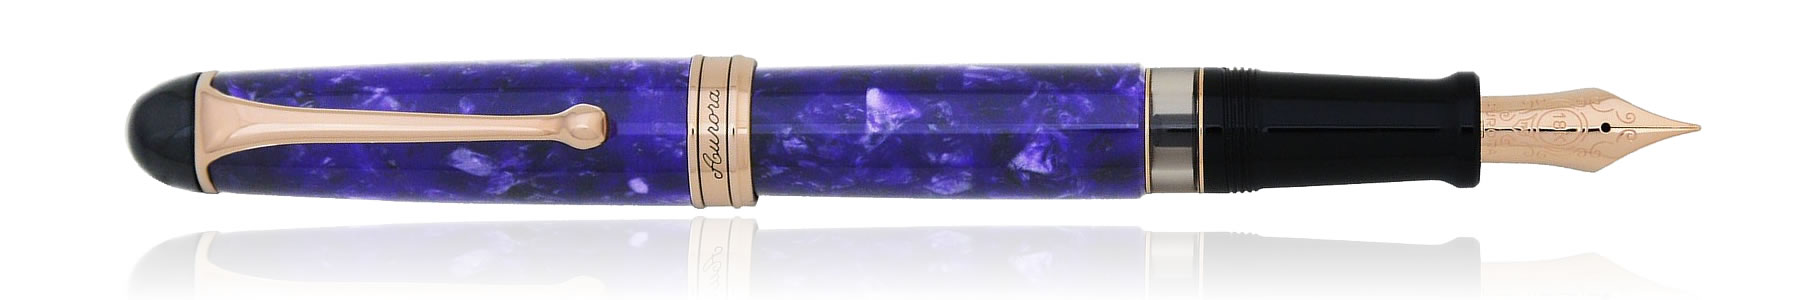 Aurora 88 Nebulosa Fountain Pen